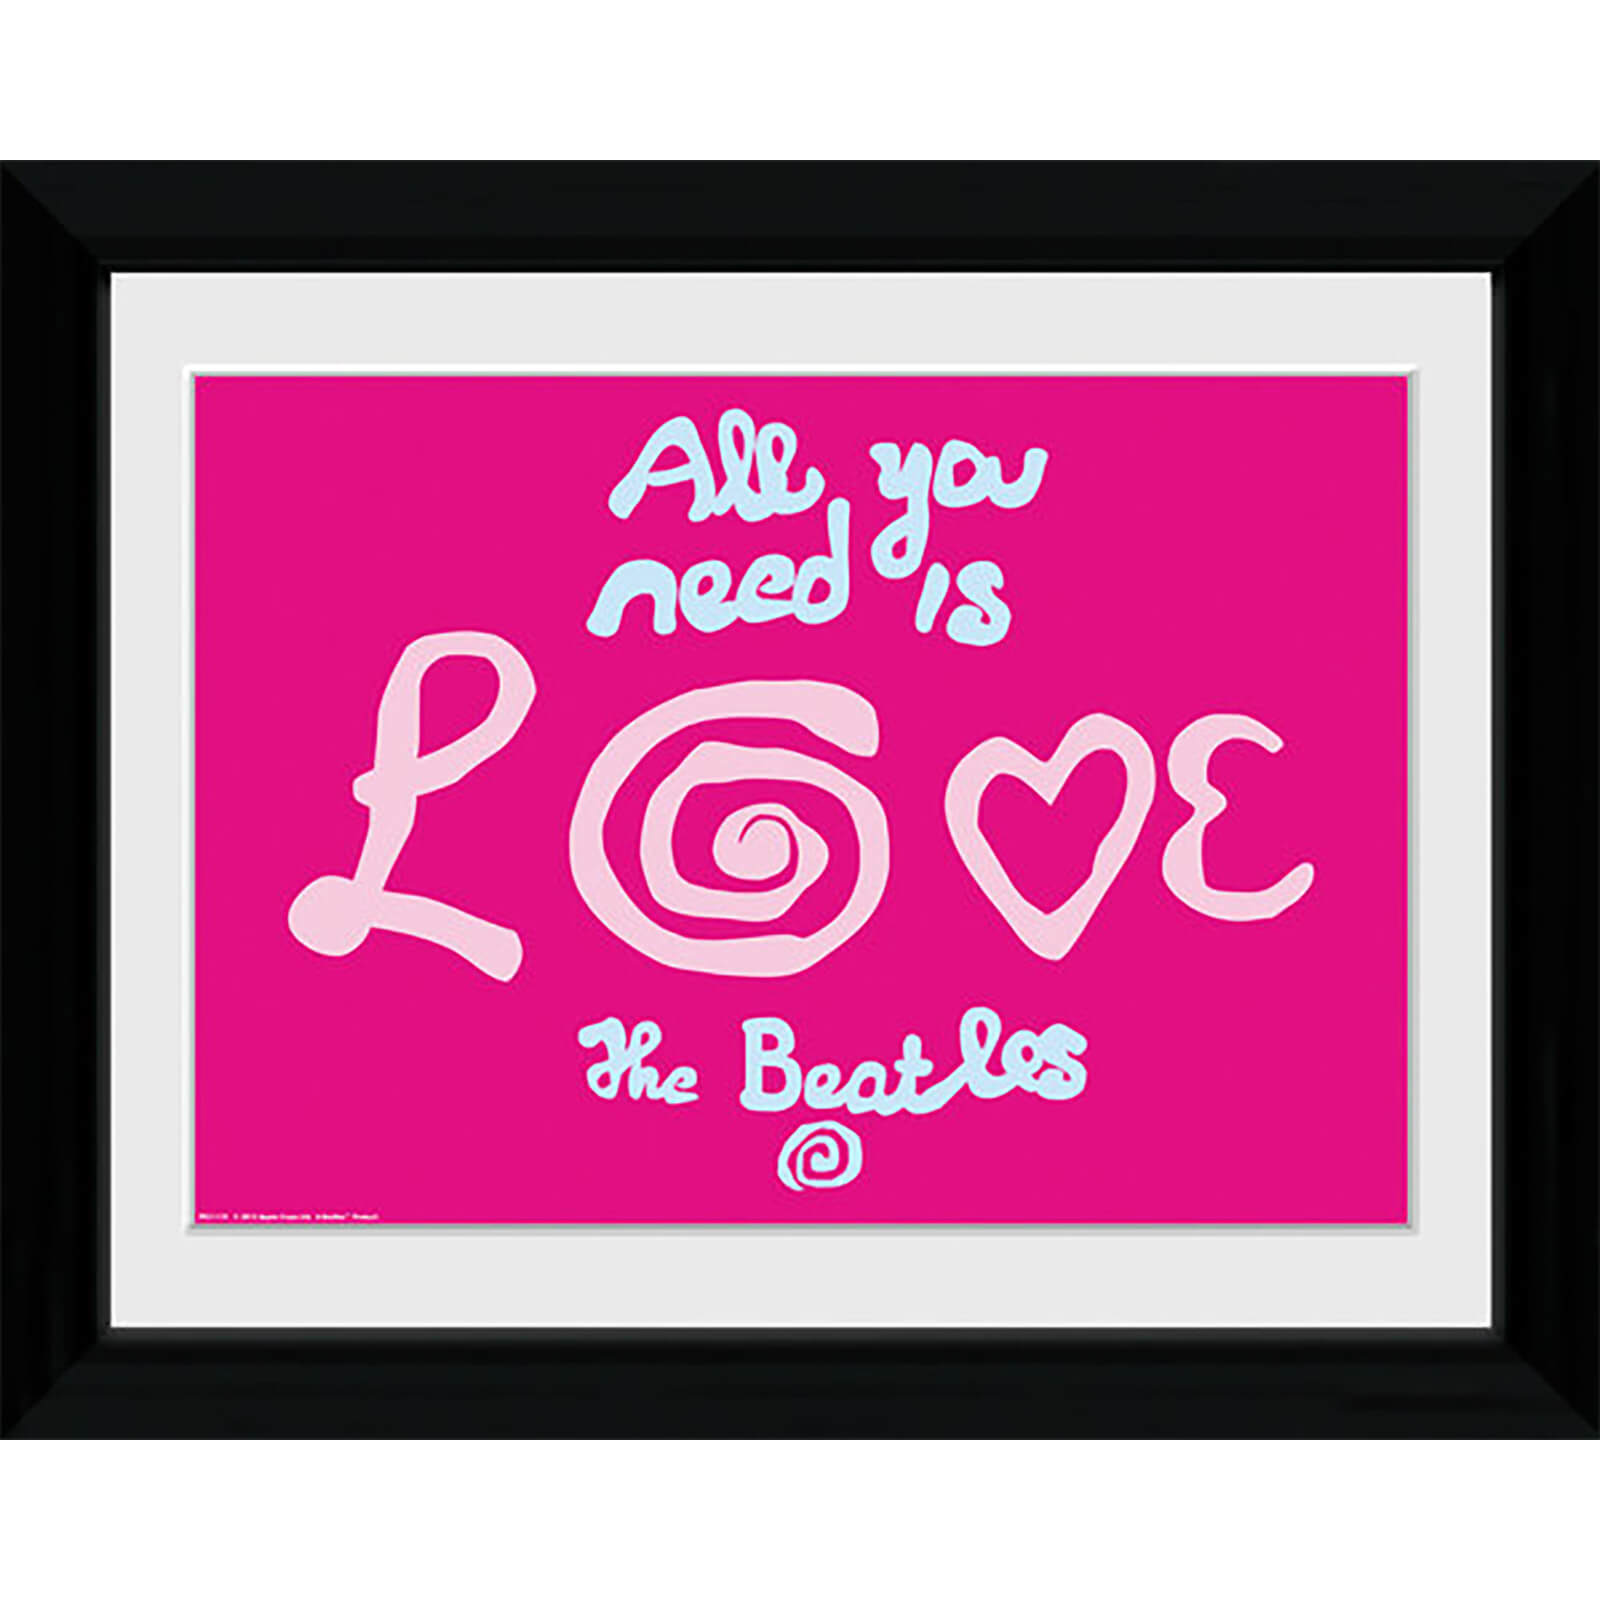 The Beatles All You Need Is Love - Collector Print - 30 x 40cm